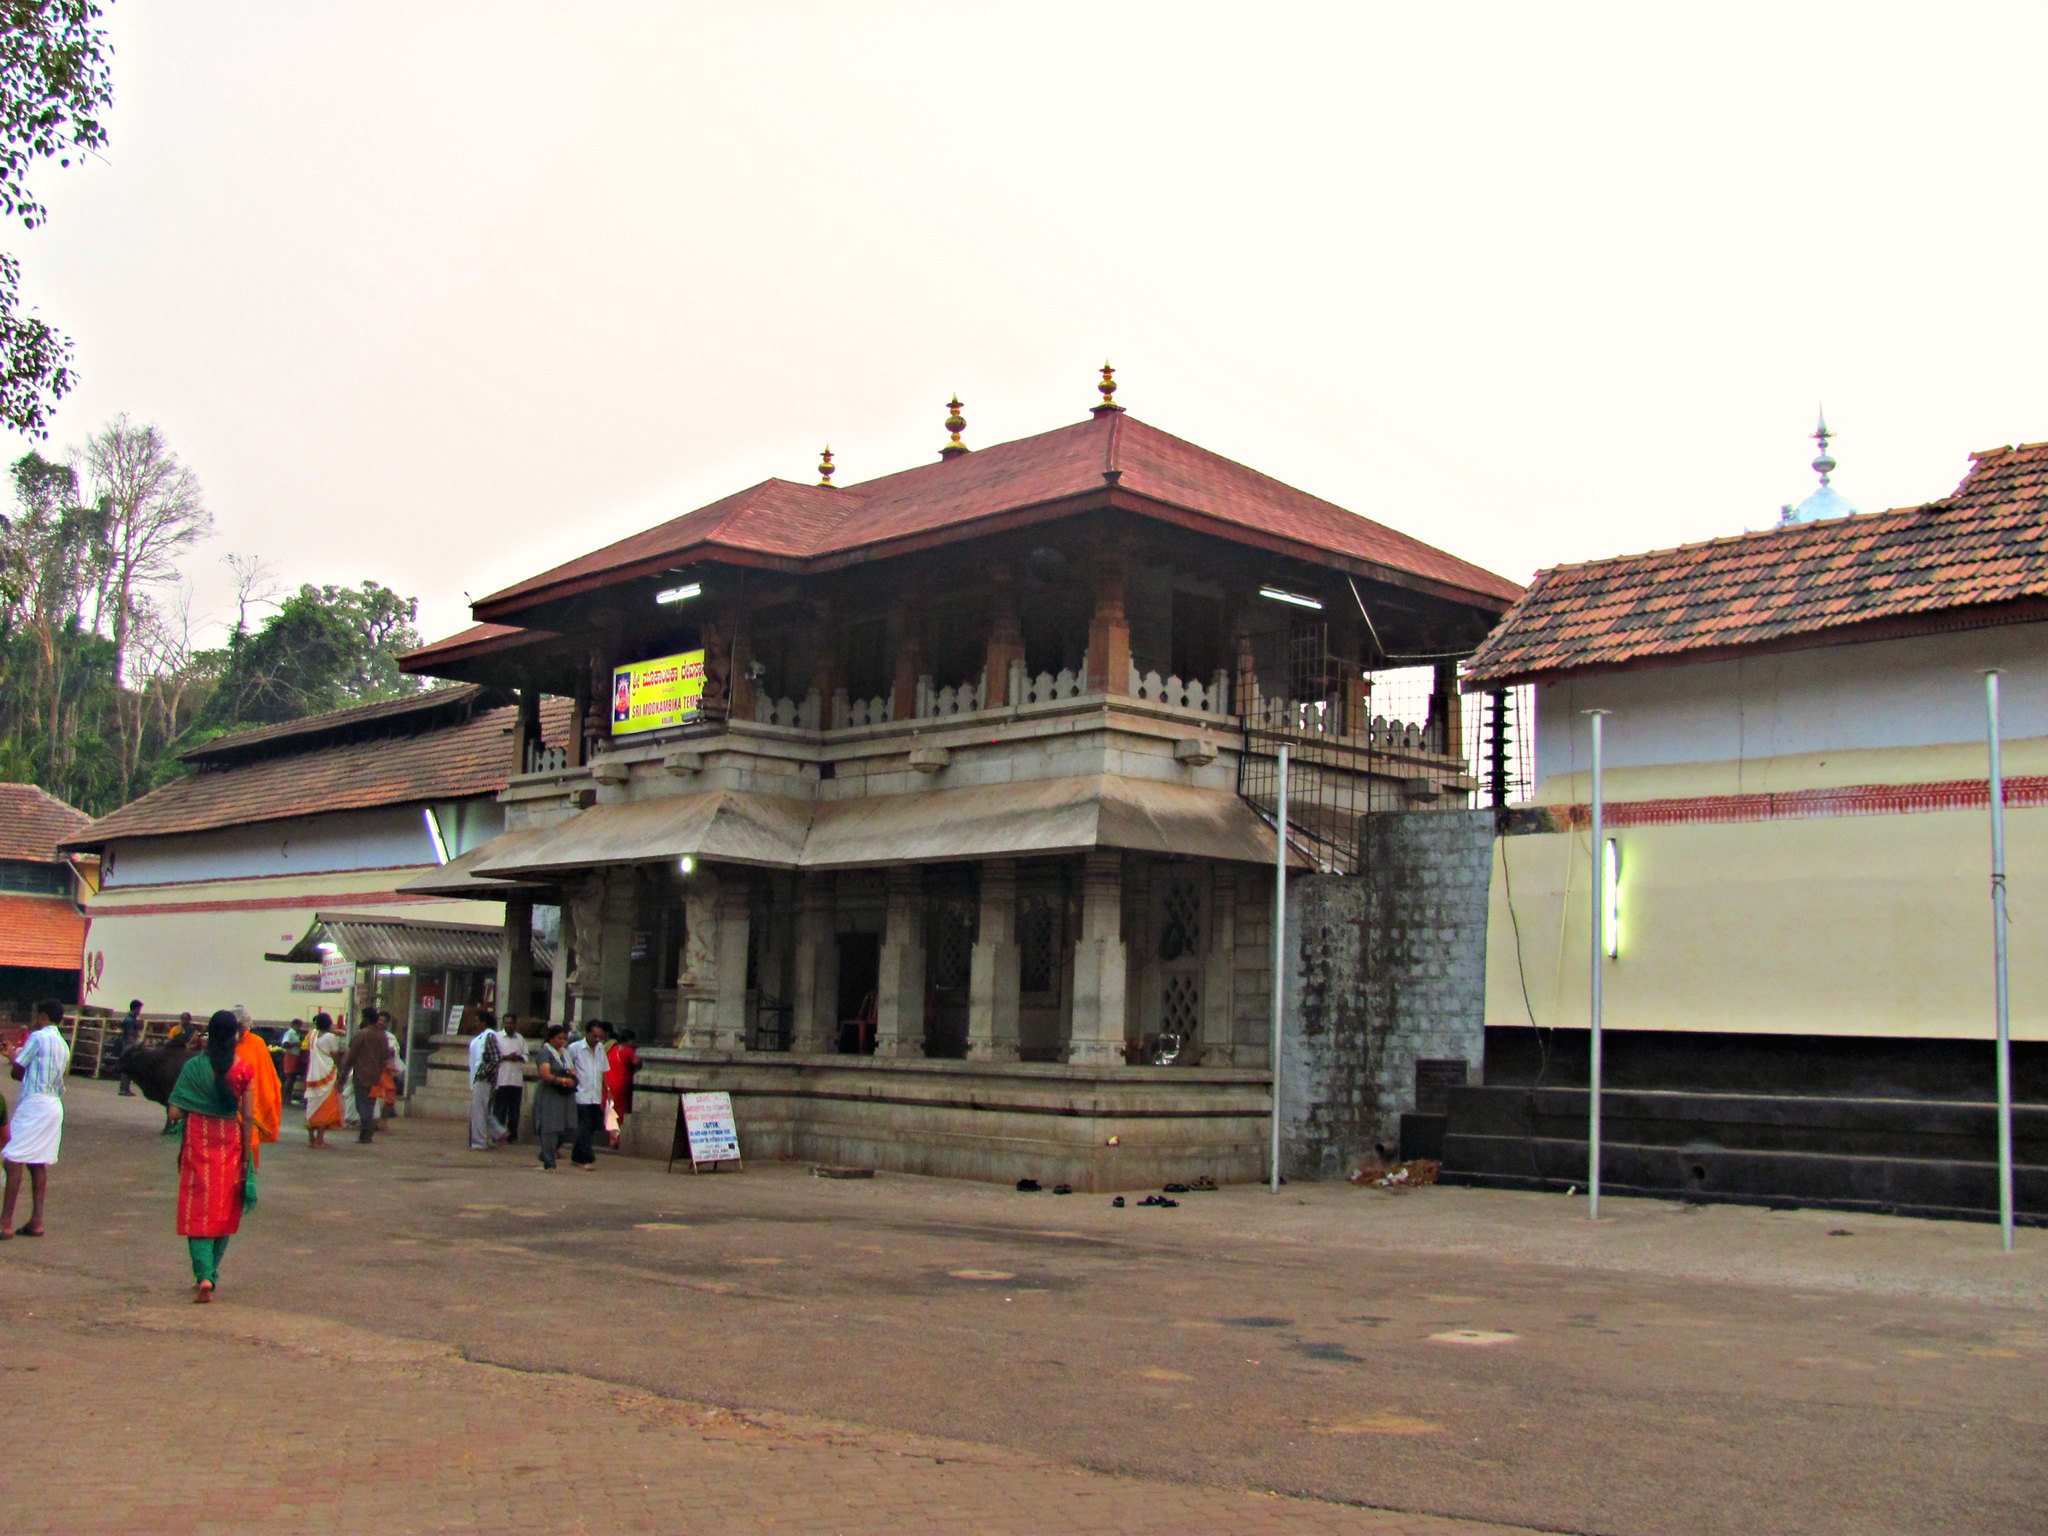 Sri Mookambika Devi Temple, Kollur Travel Guide : Origin, History, Festivals, Timings, How to Reach, Stay Options, Best Time to Visit Sri Mookambika Devi Temple